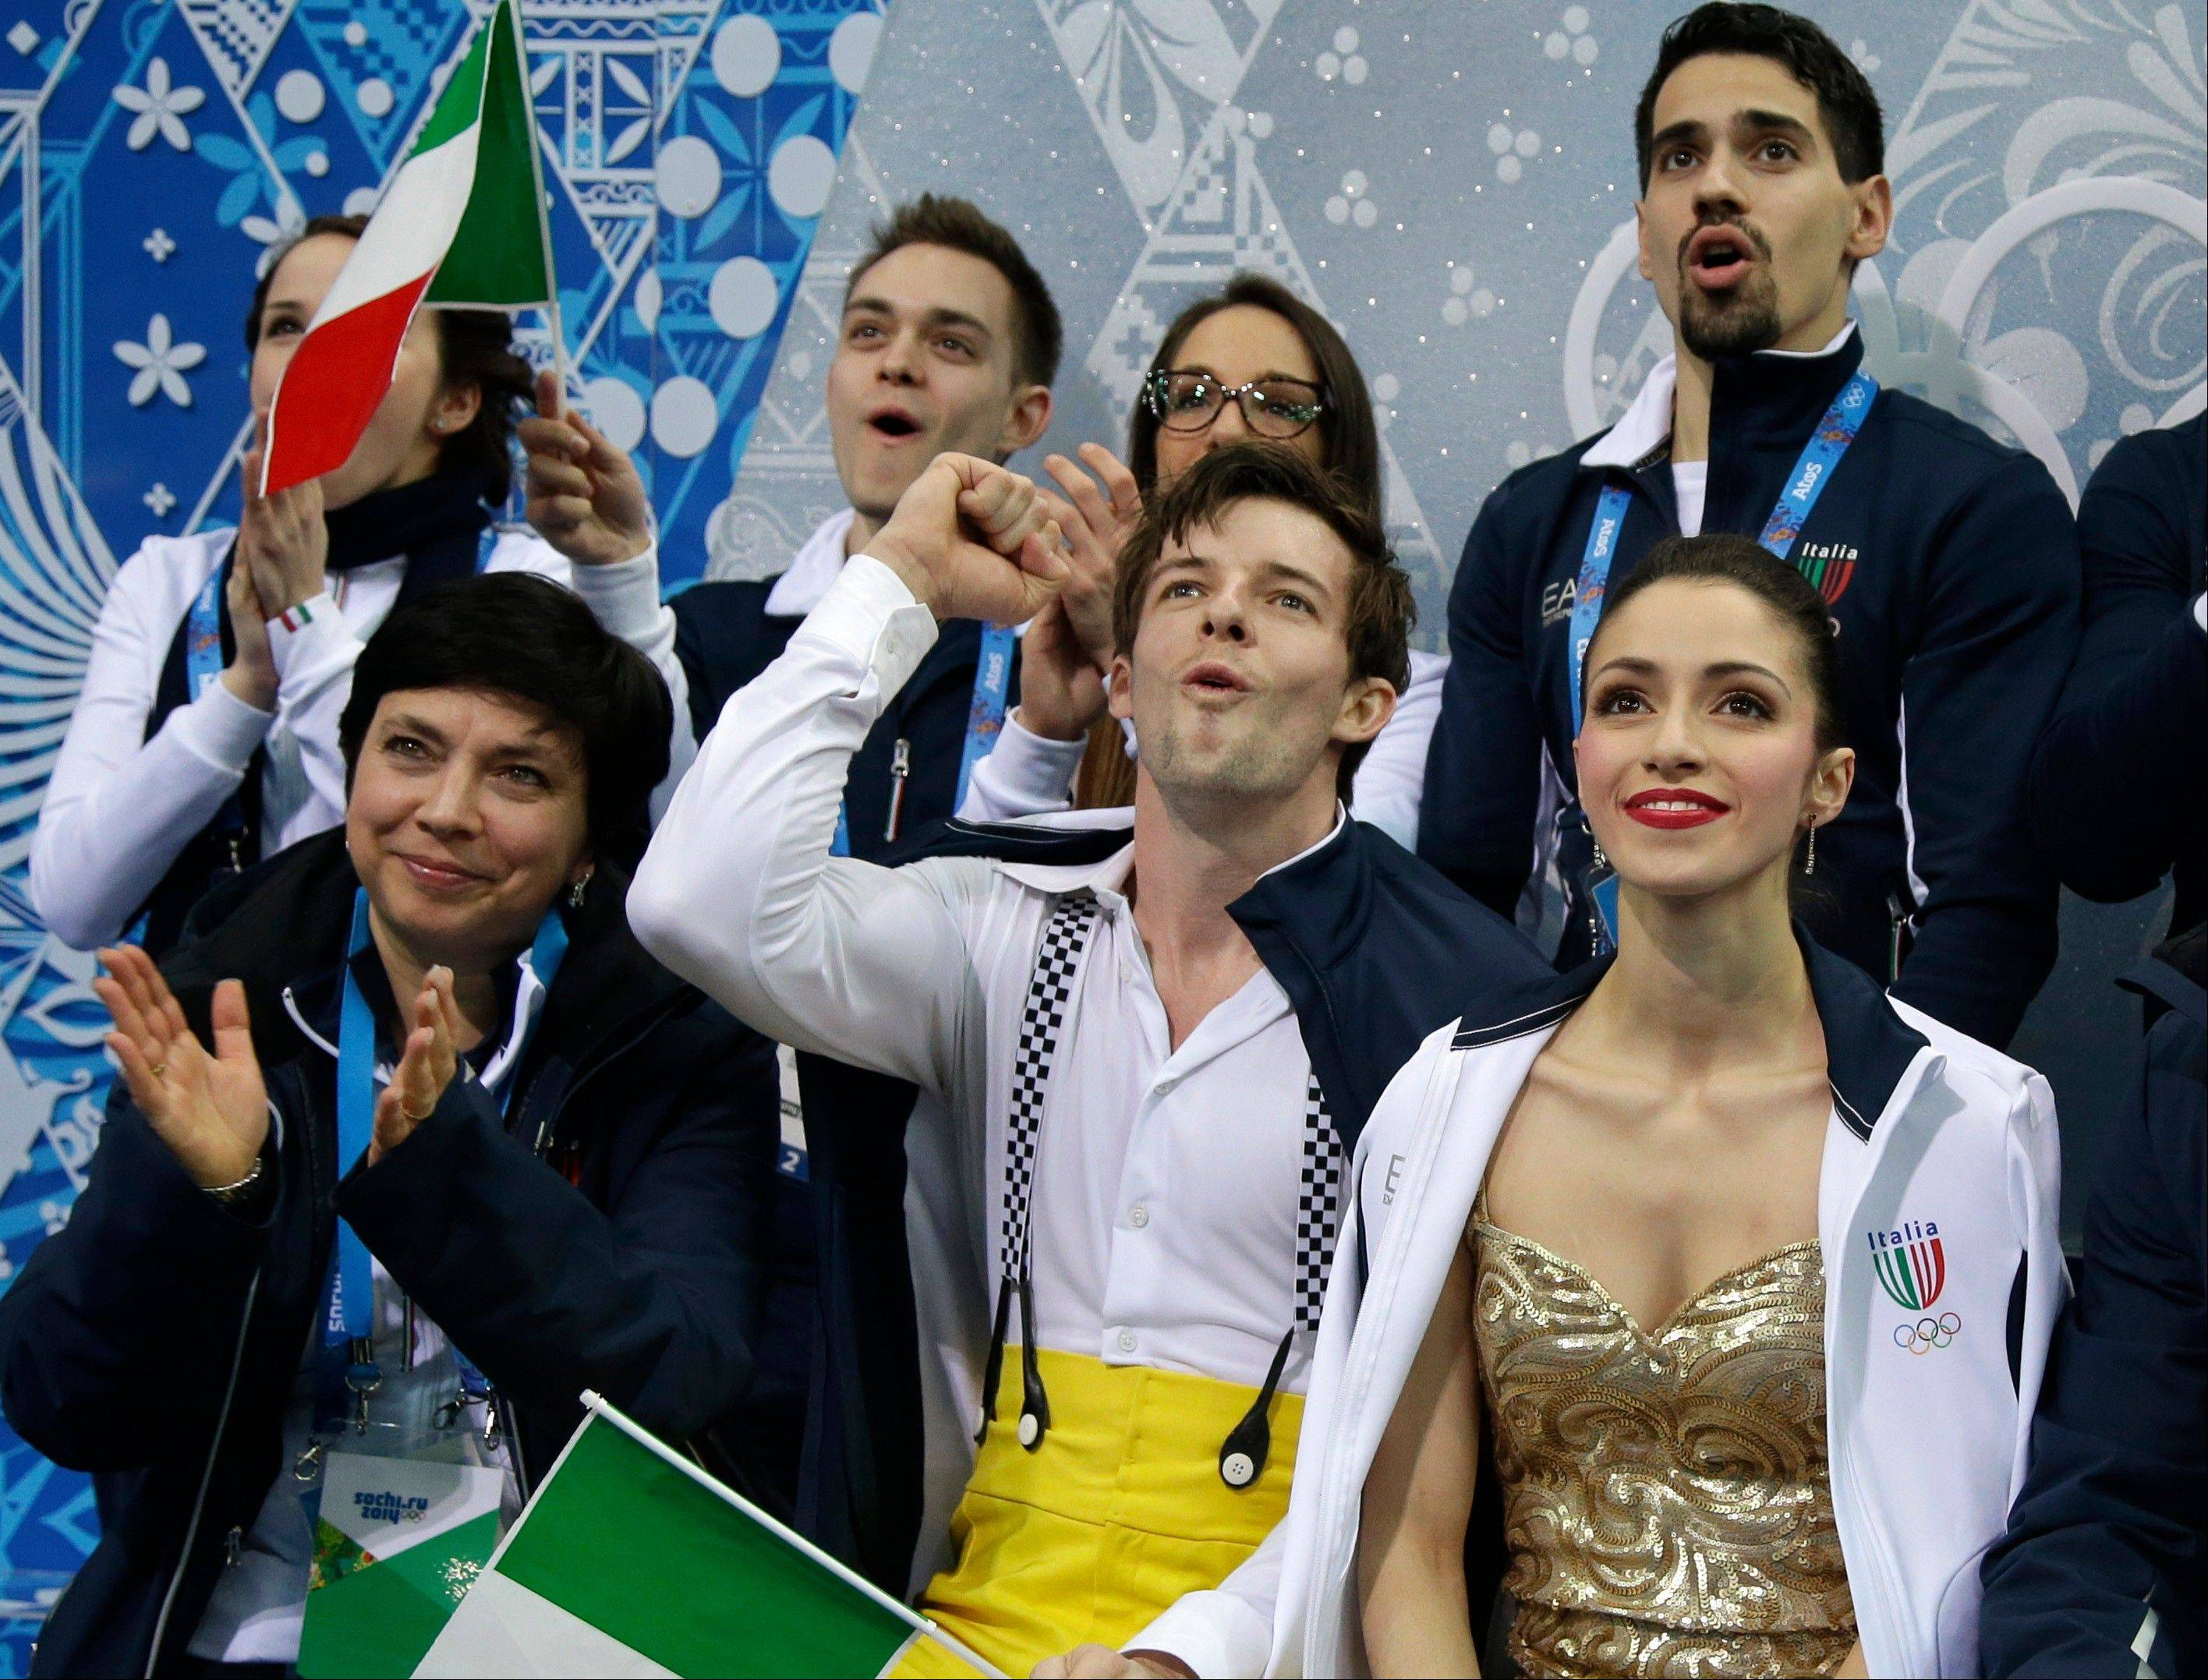 Stefania Berton and Ondrej Hotarek of Italy, front right, wait for their results for the team pairs short program figure skating competition at the Iceberg Skating Palace during the 2014 Winter Olympics.